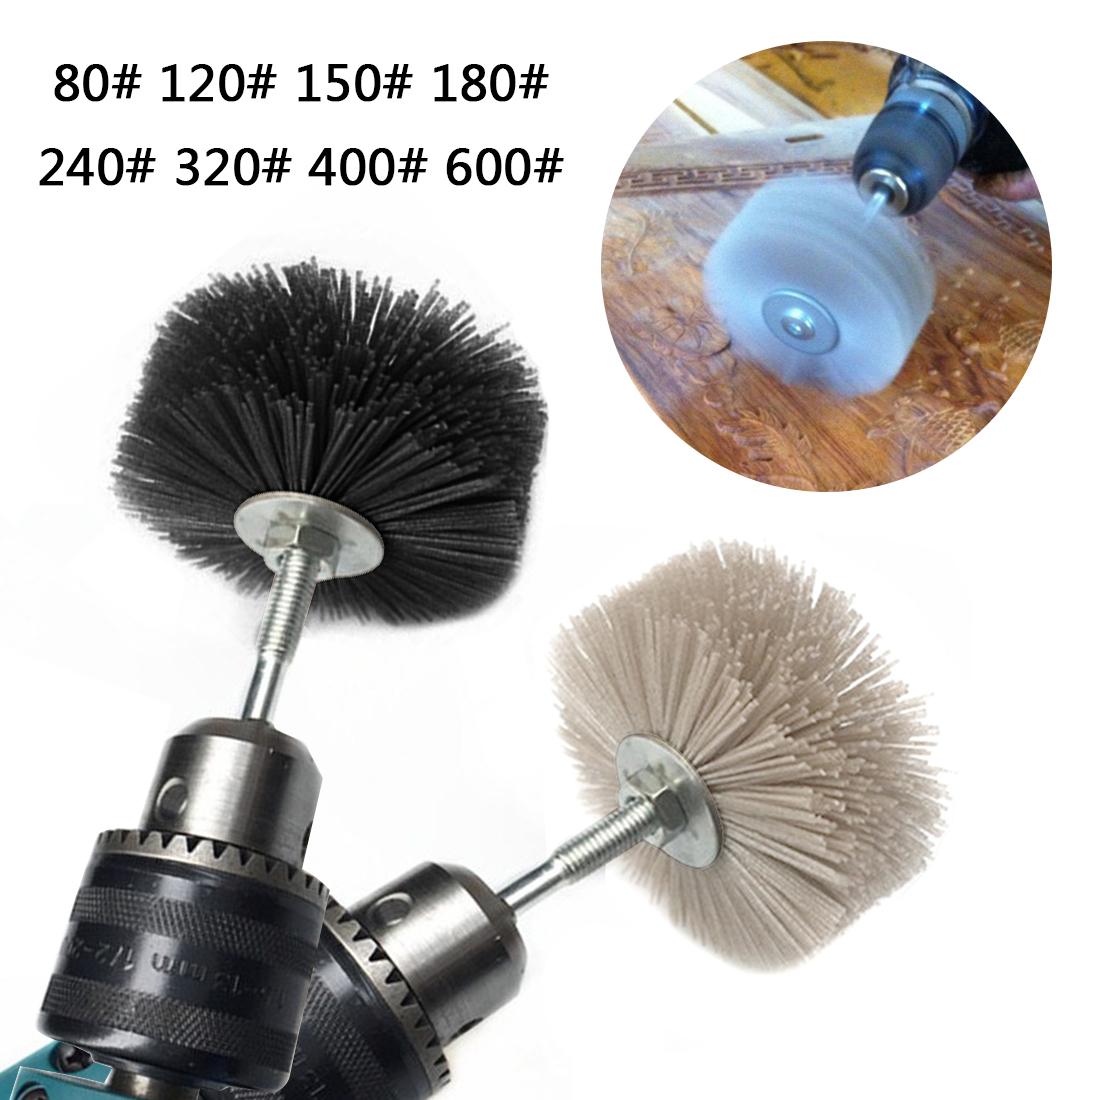 1pcs 80mm Drill Abrasive Wire Grinding Wheel Nylon Bristle Polishing Brush For Wood Furniture Mahogany Finish